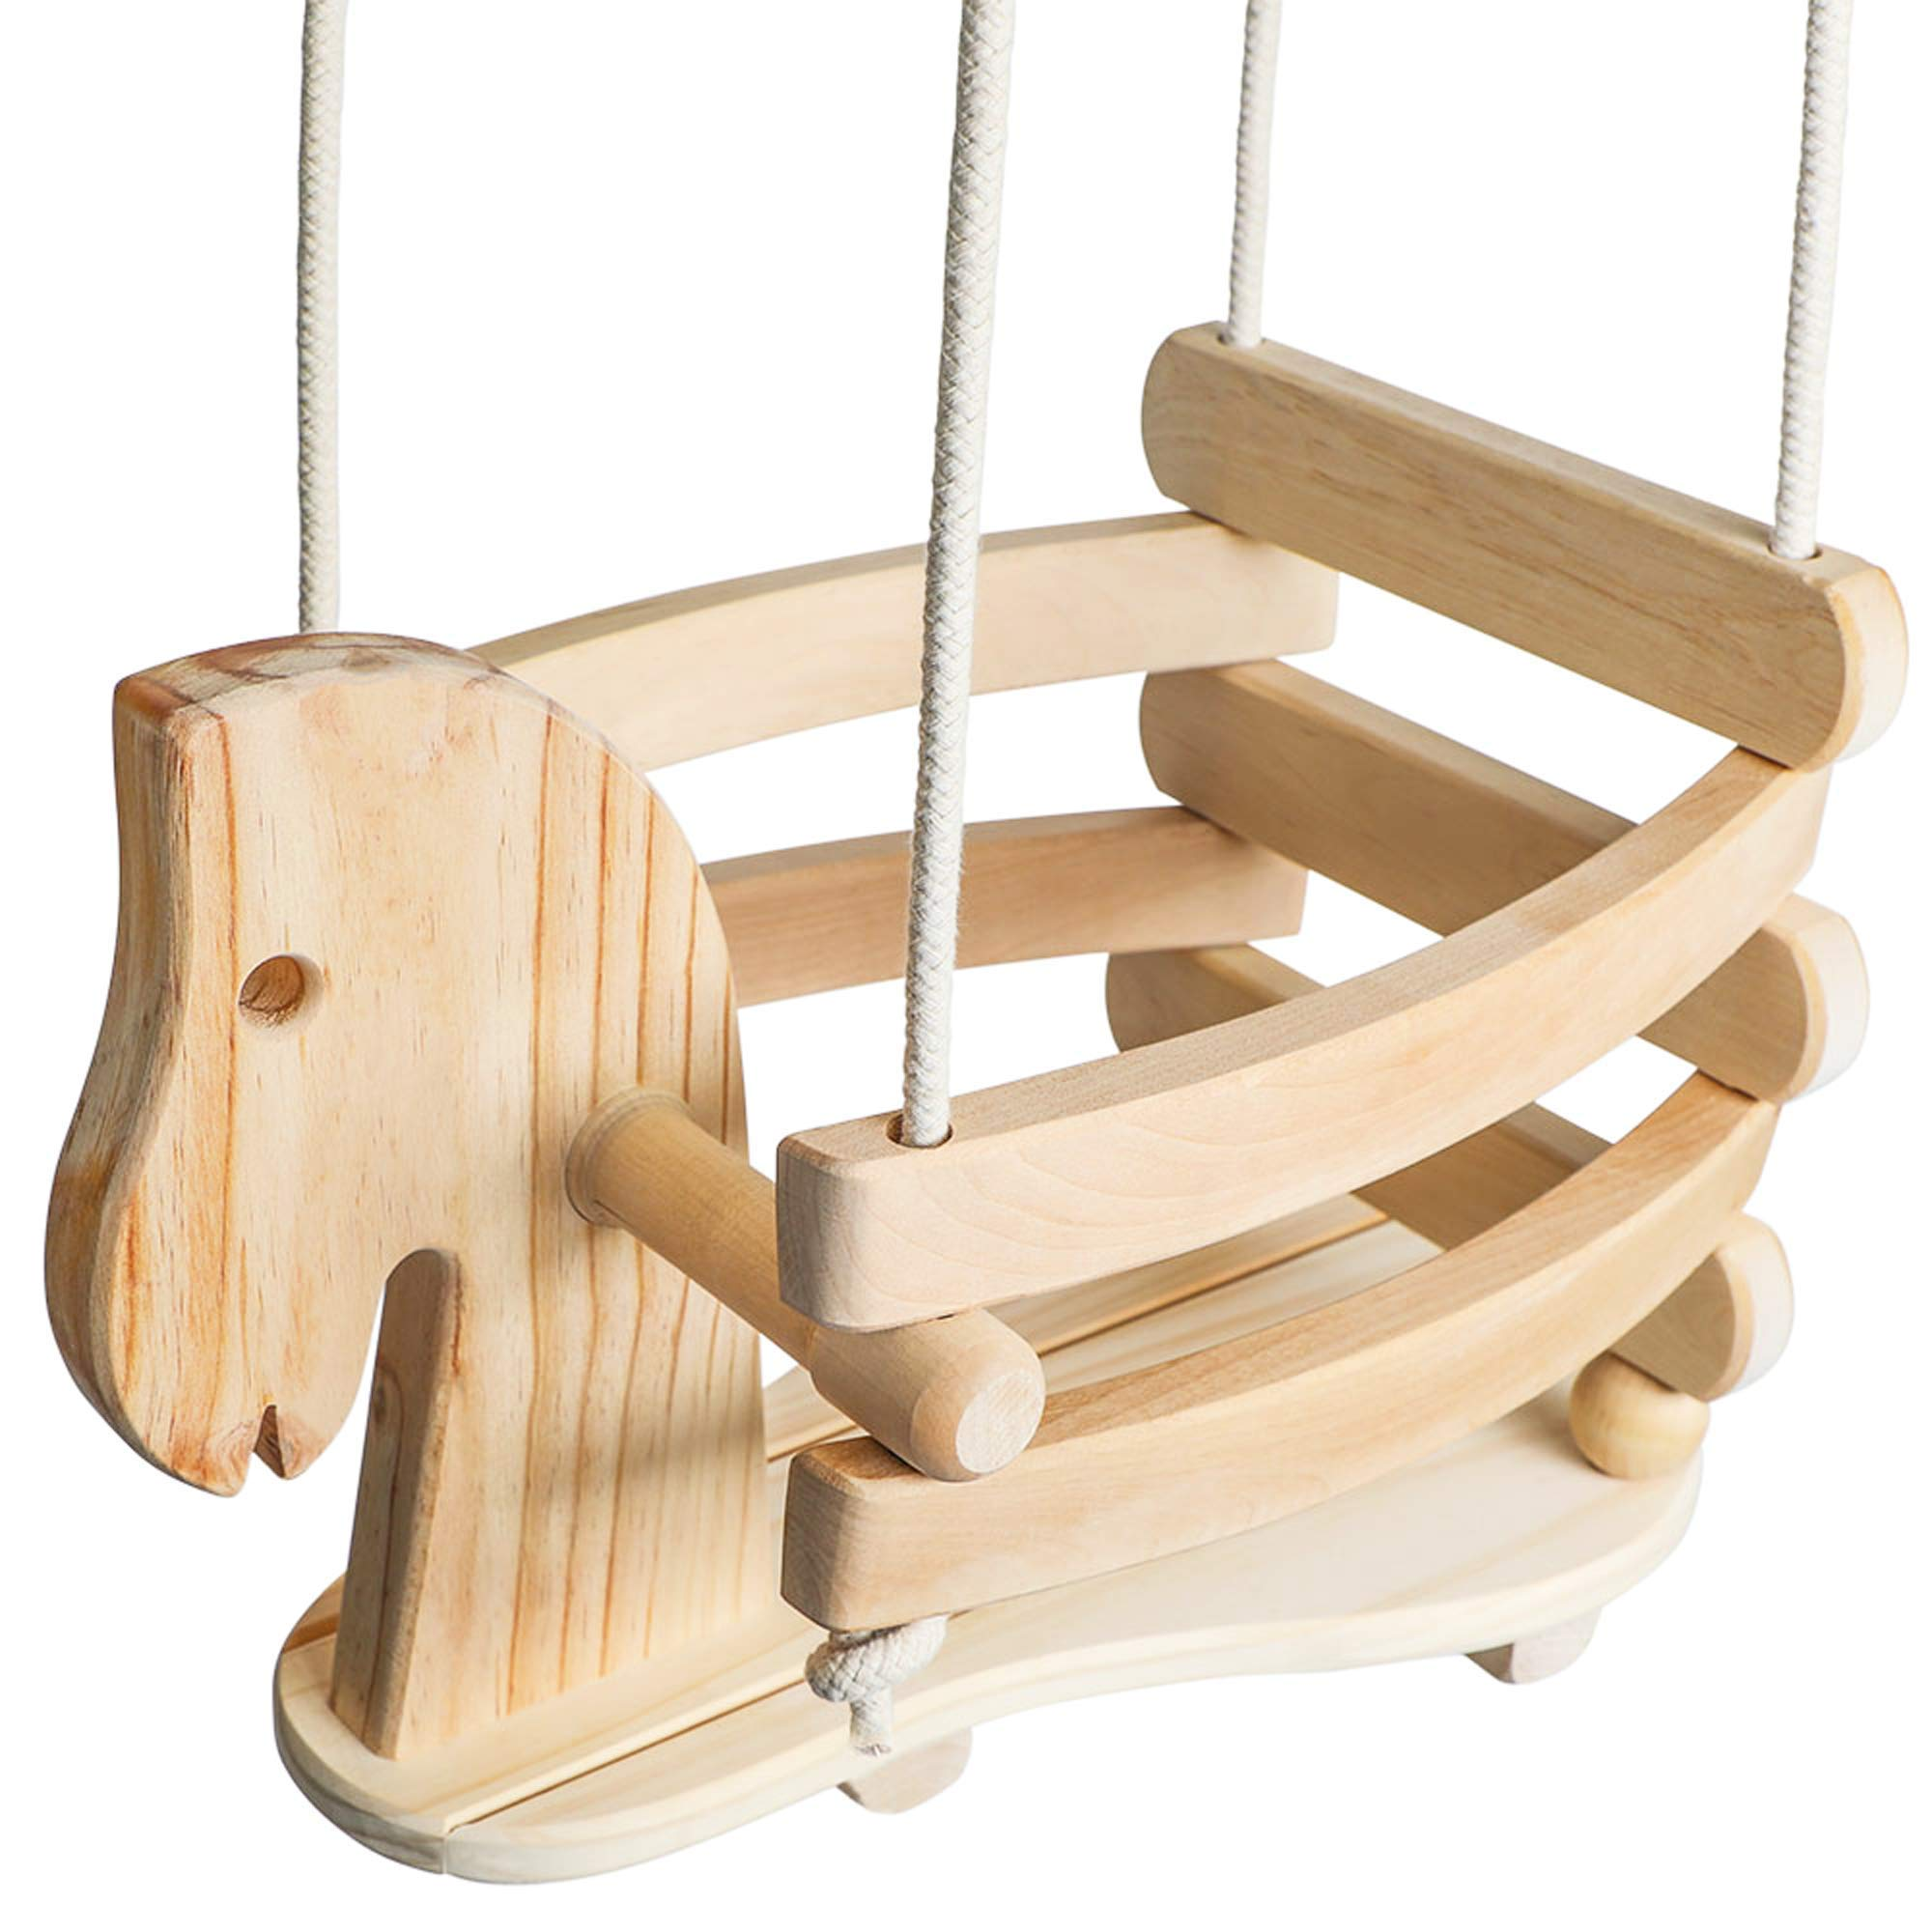 Wooden Horse Toddler Swing Set - Baby Swing Outdoor & Indoor - Smooth Birch Wood with Natural Finish & Cotton Ropes - Eco-Conscious Toddler Bucket Swing Chair, 6 Months to 3 Years by Ecotribe